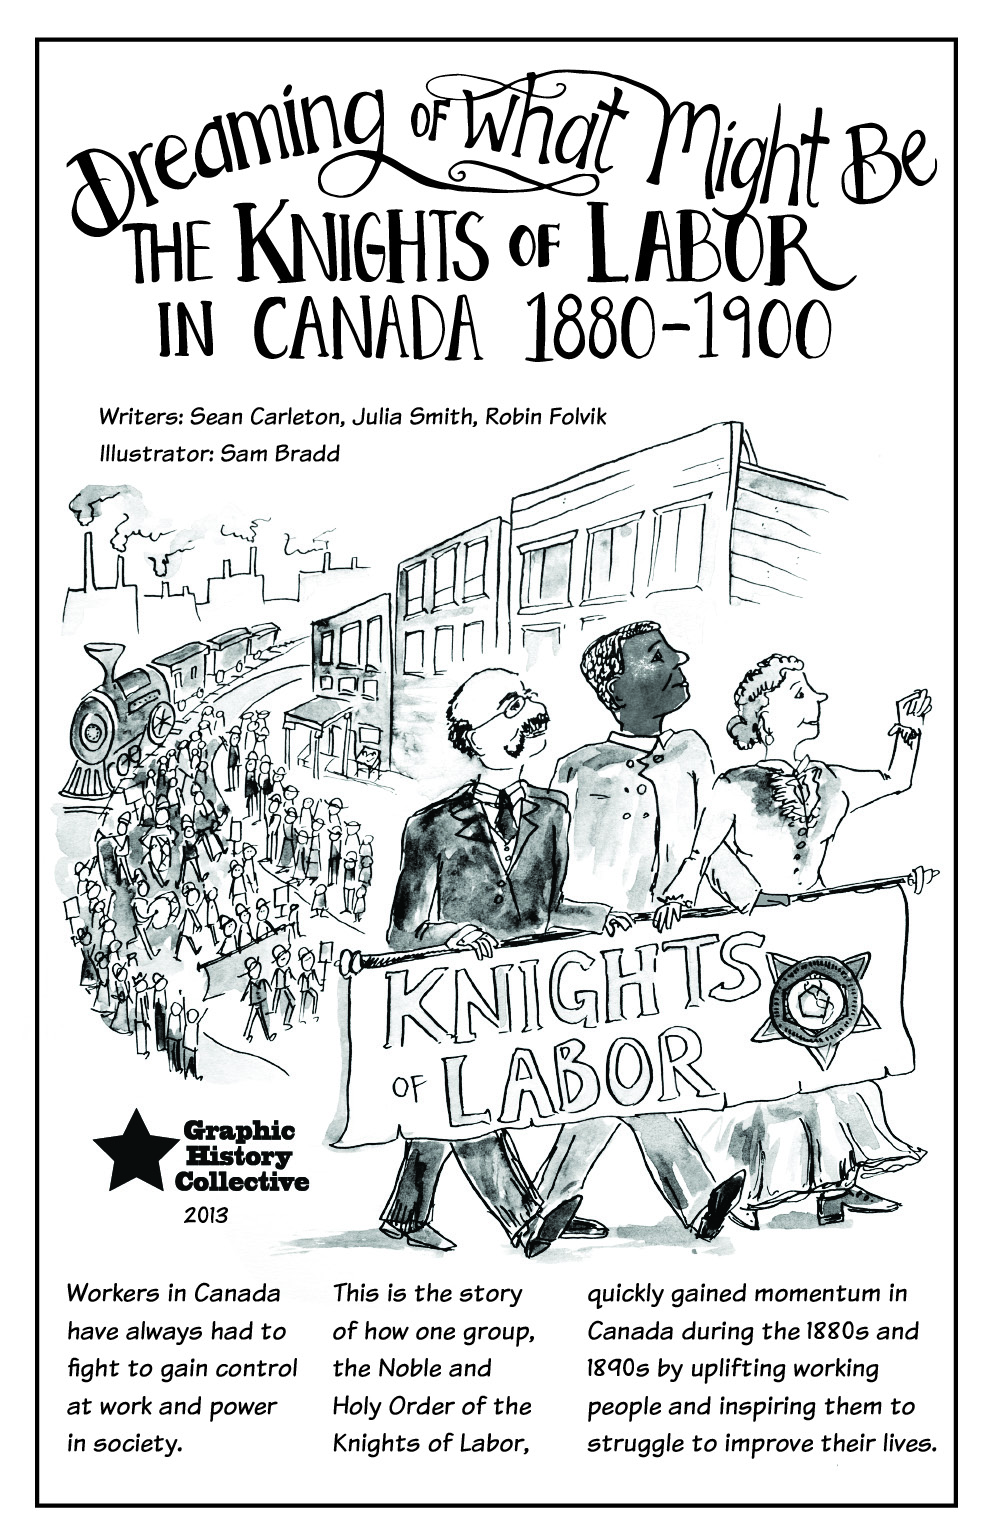 """an introduction to the history of the canadian labor movement Indeed, just six months after her own introduction to union activism, staebell  talked the  the """"youth turn"""" within the canadian labor movement is still in its  infancy  their legal and contractual rights in the workplace, or of the nature,  history."""